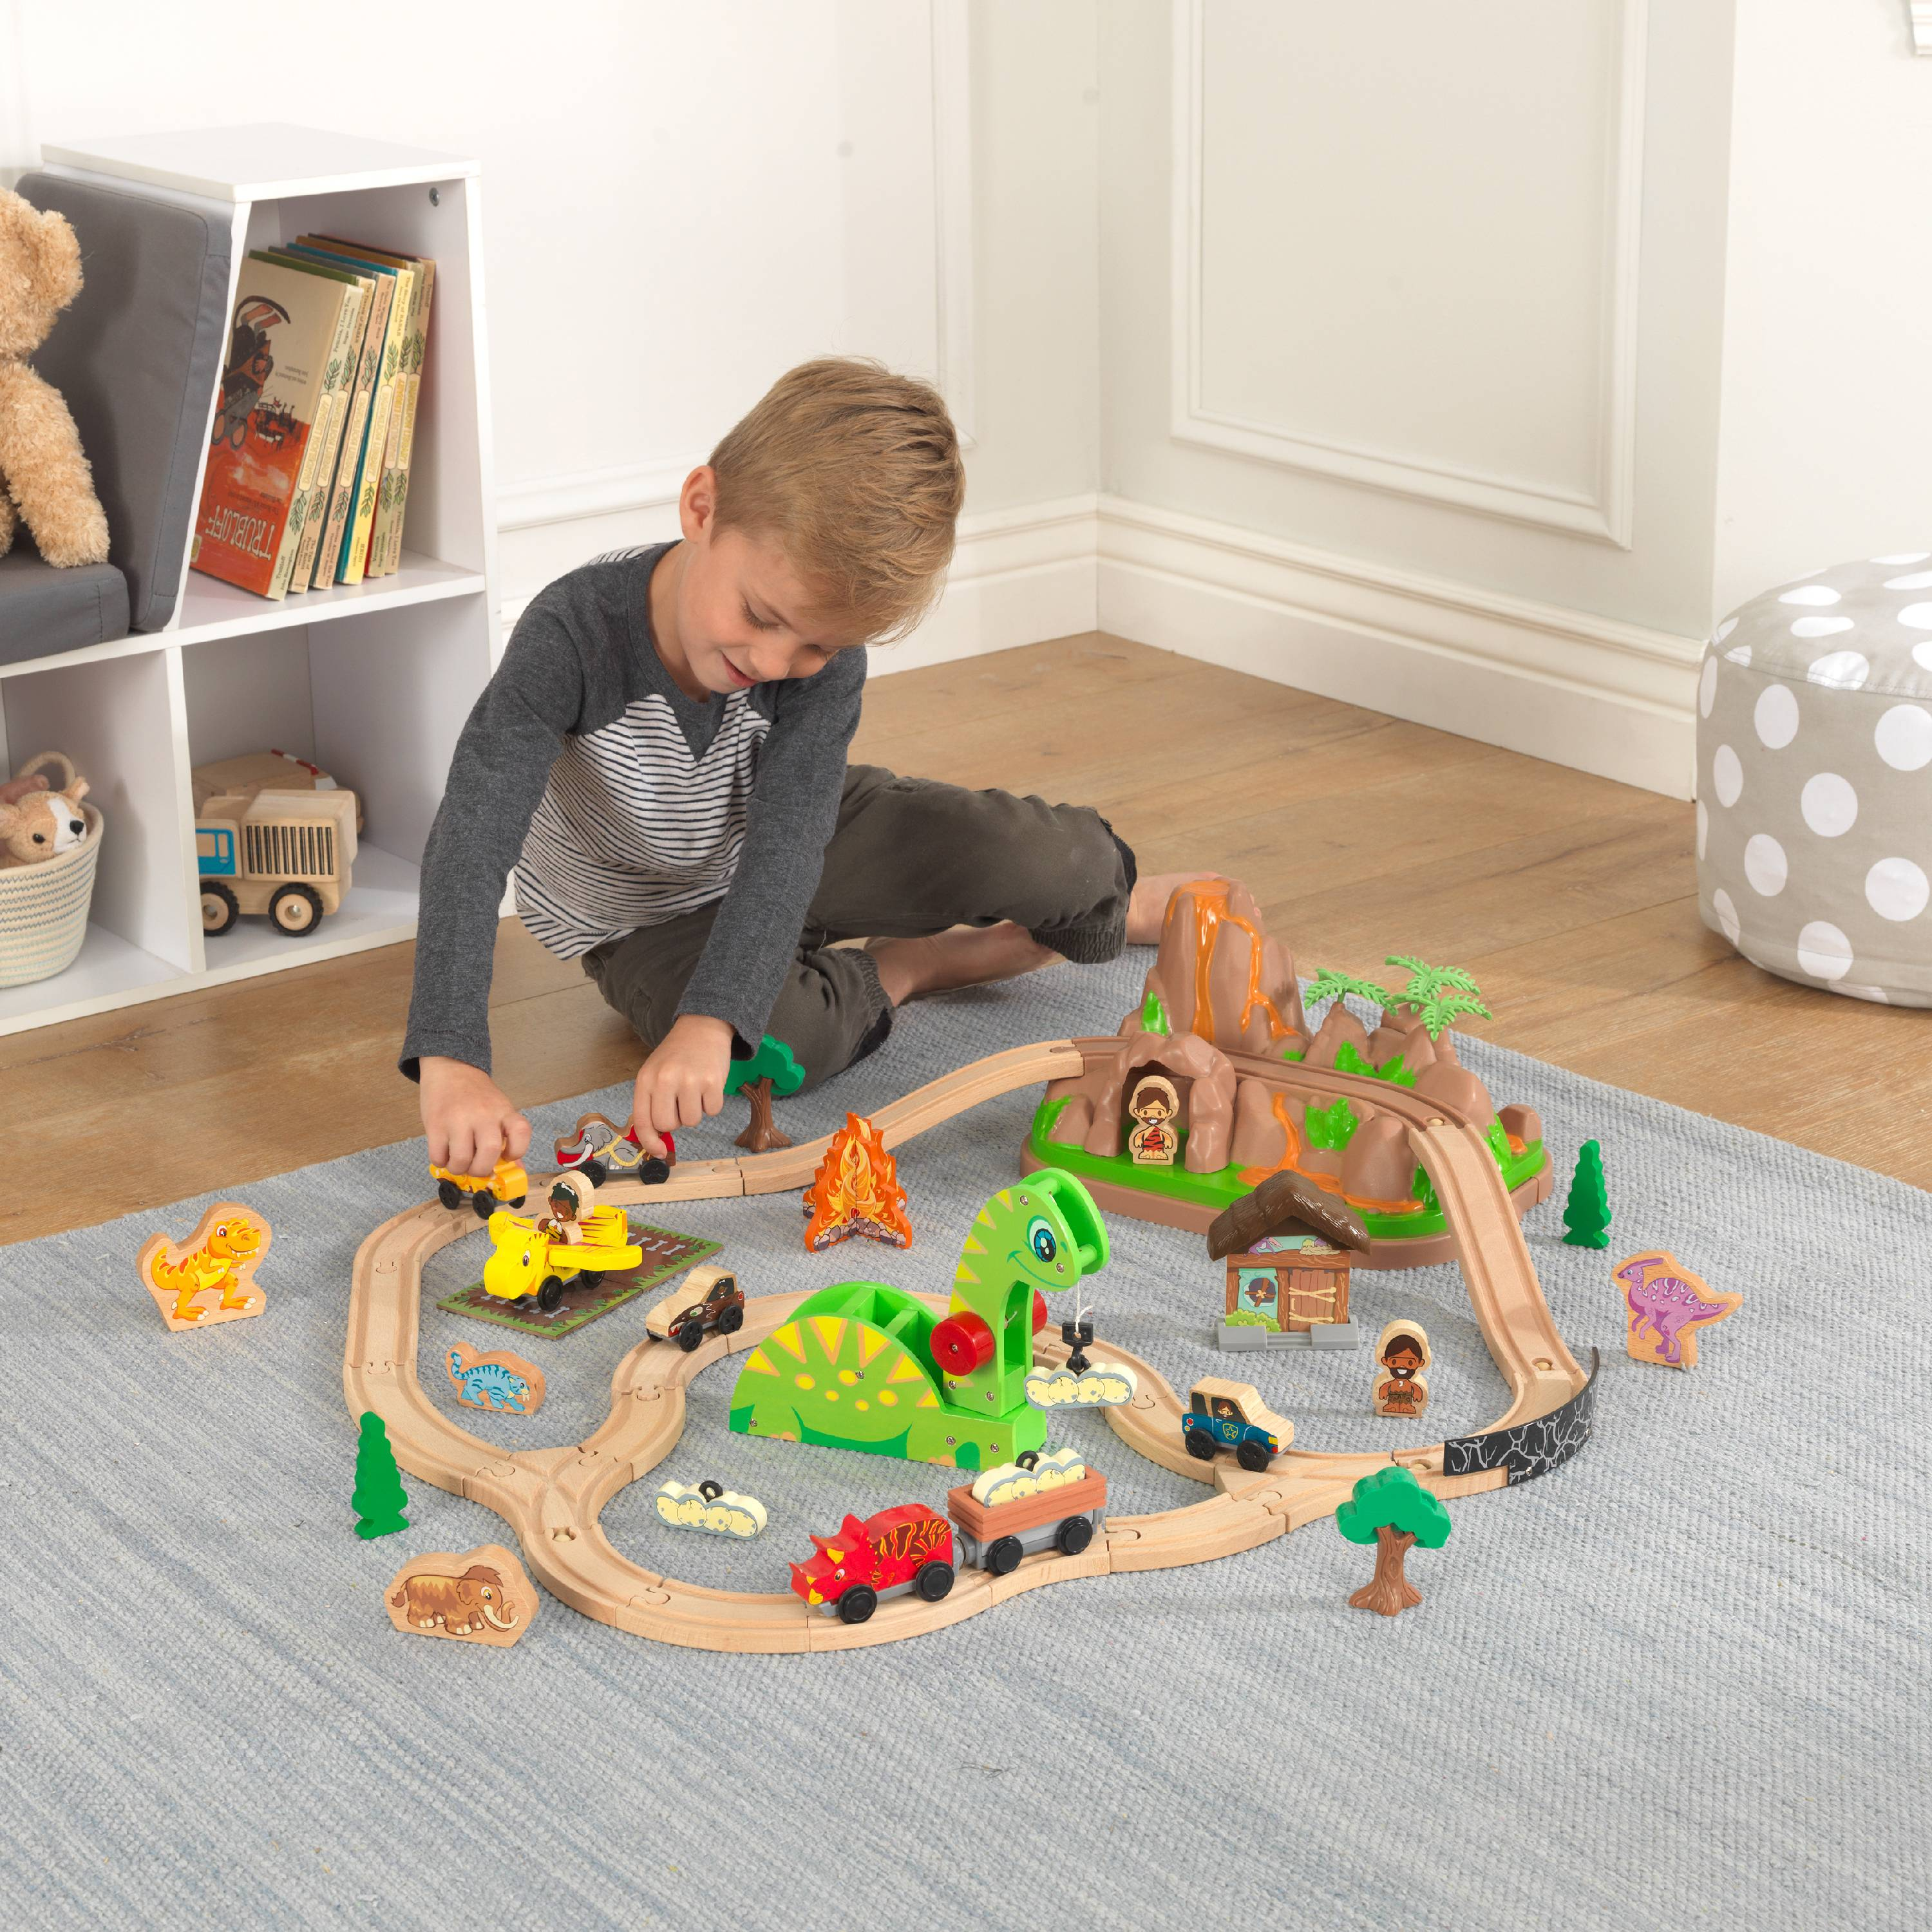 KidKraft Dinosaur Bucket Top Train Set with 56 accessories included by KidKraft